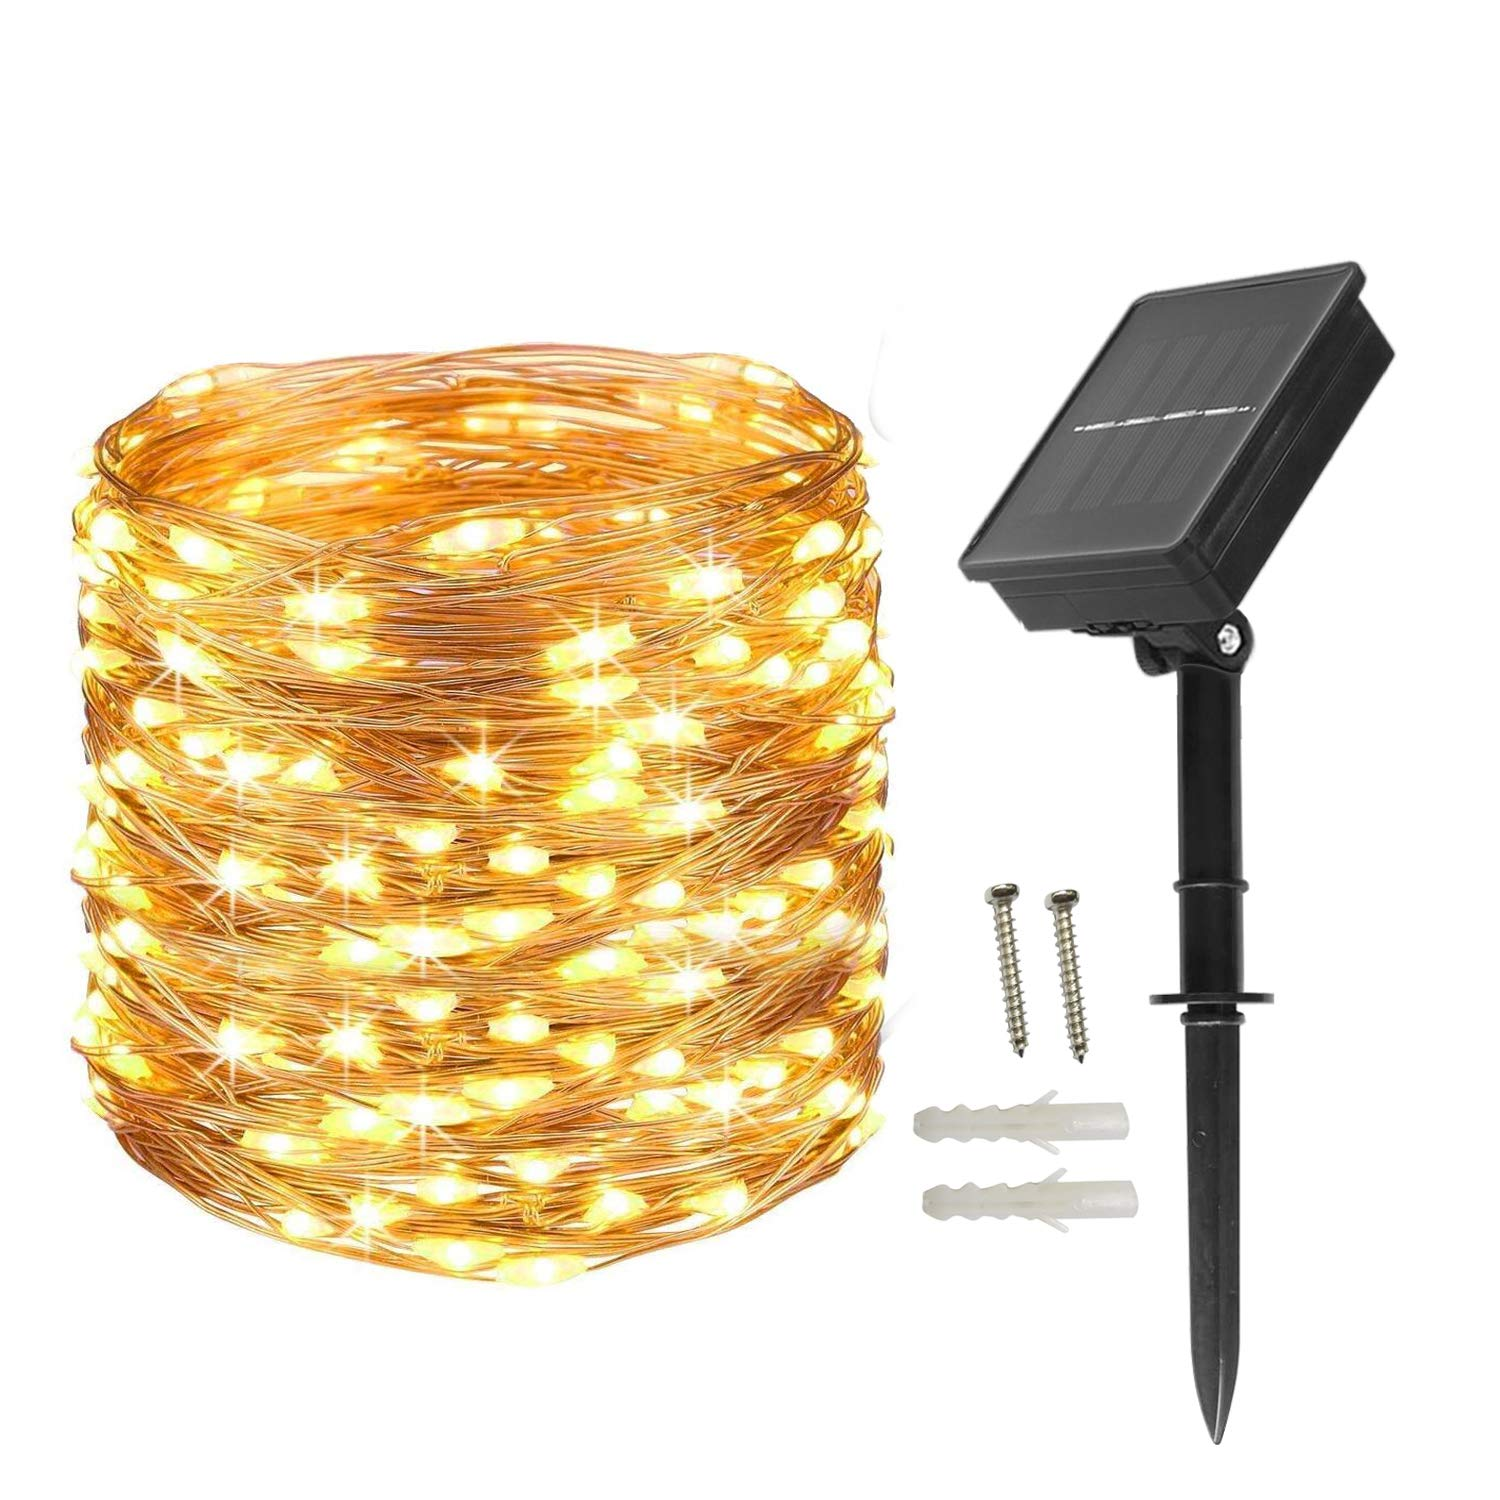 BXROIU Solar Fairy Lights Copper Wire 200 LEDs String Lights Starry Fairy Lights, 8Modes 66ft/20m Waterproof Outdoor Lights for Patio, Garden, Party (Warm White)